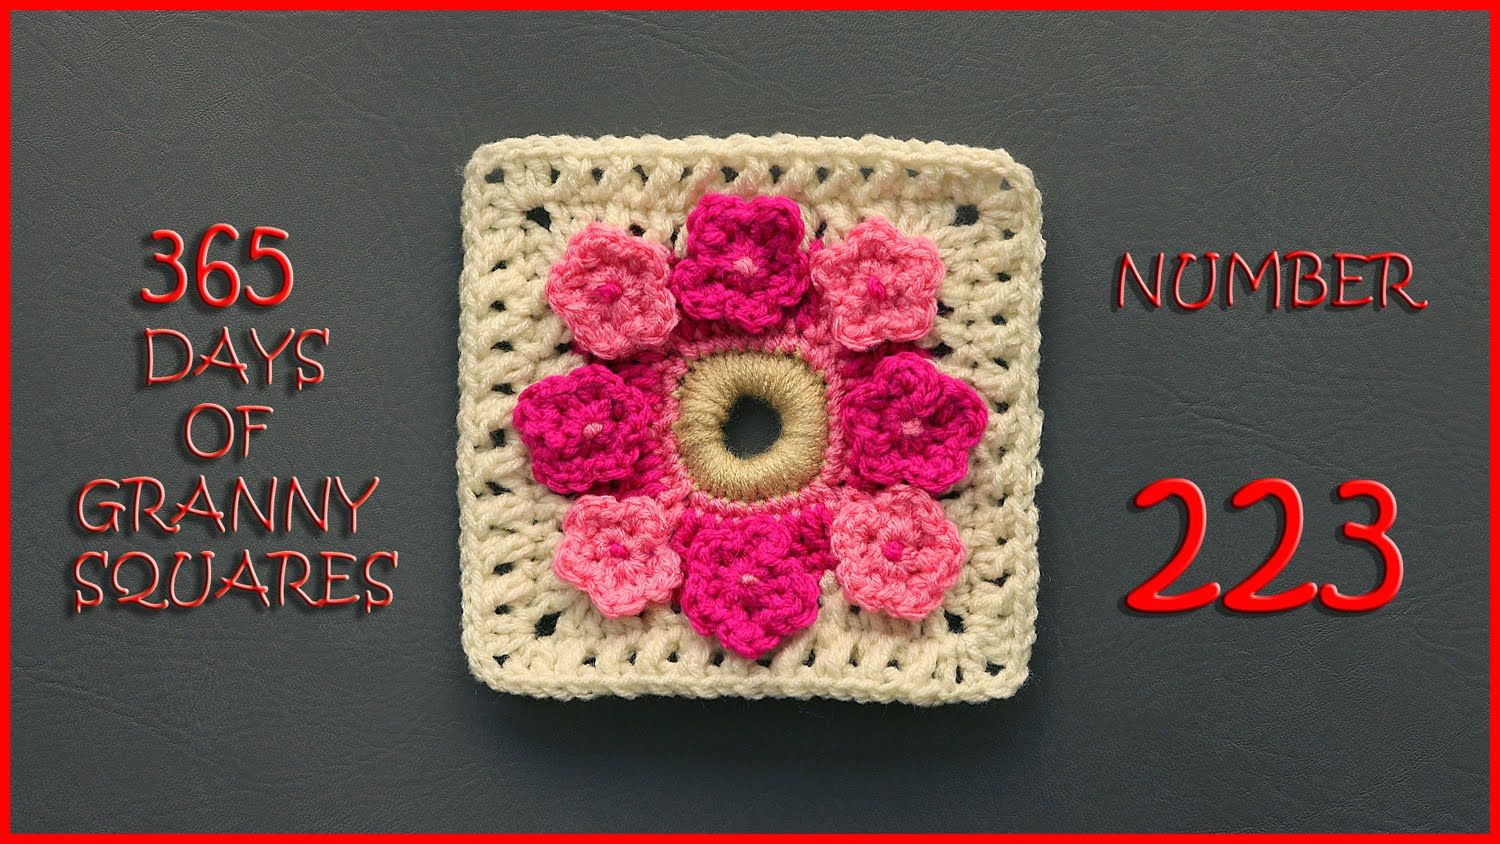 365 Days of Granny Squares Number 223 - Published on Aug 9, 2016 ...